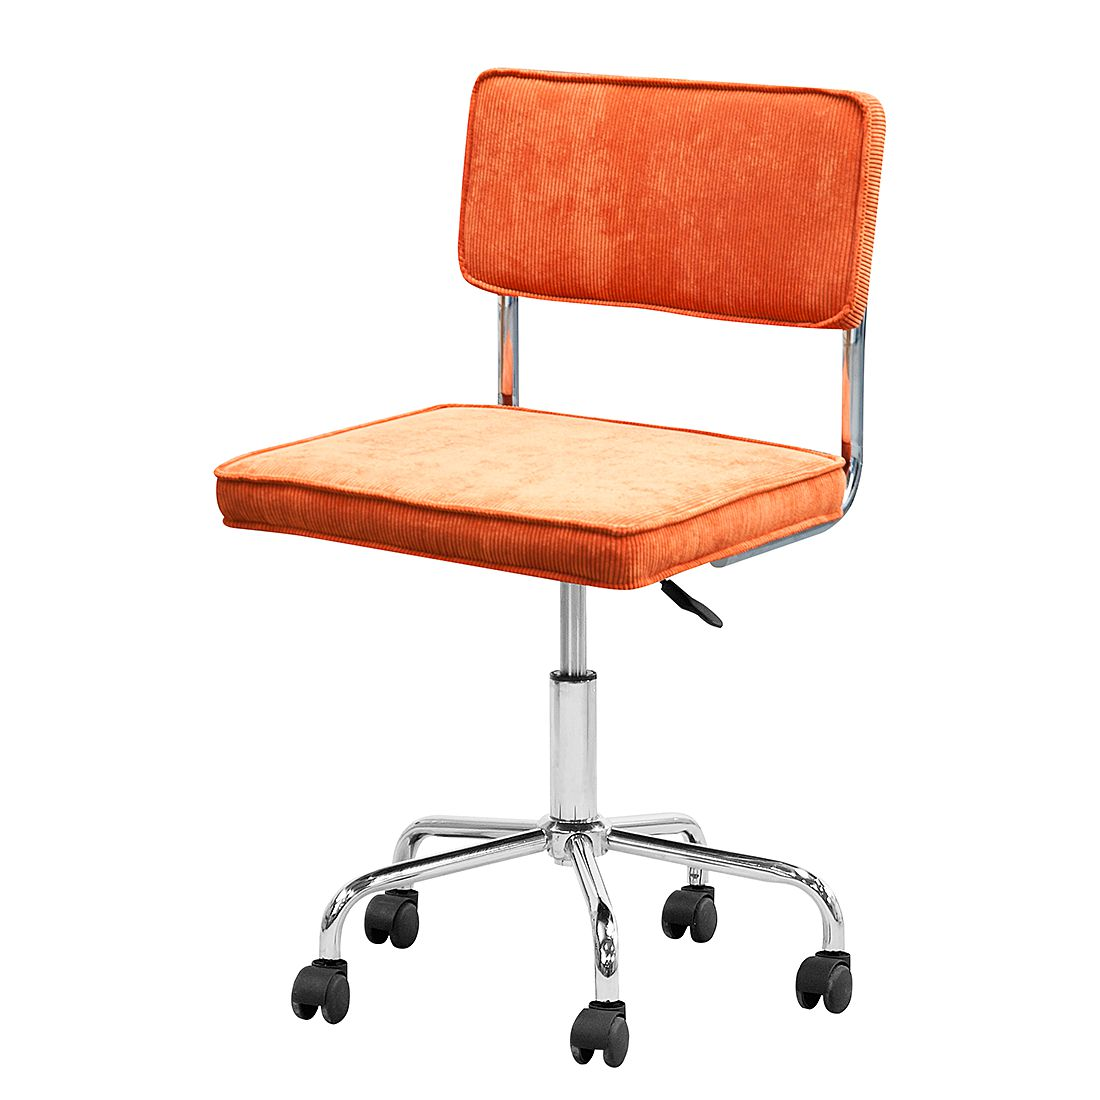 B rodrehstuhl marlon webstoff orange home24 office for Home24 office